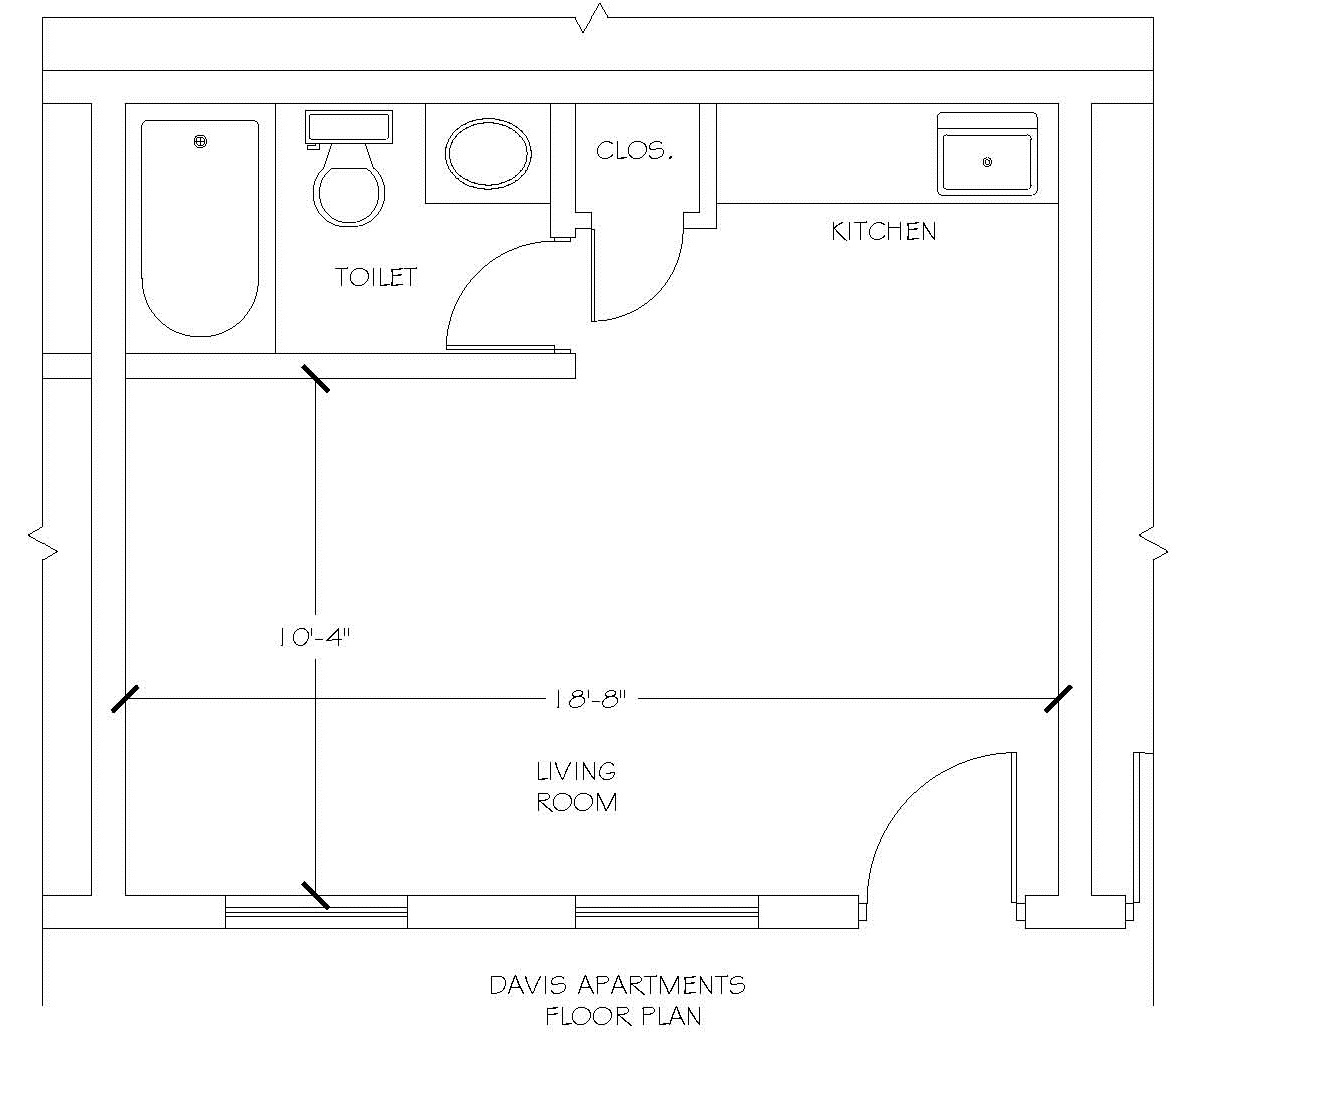 Davis apartment room floorplan